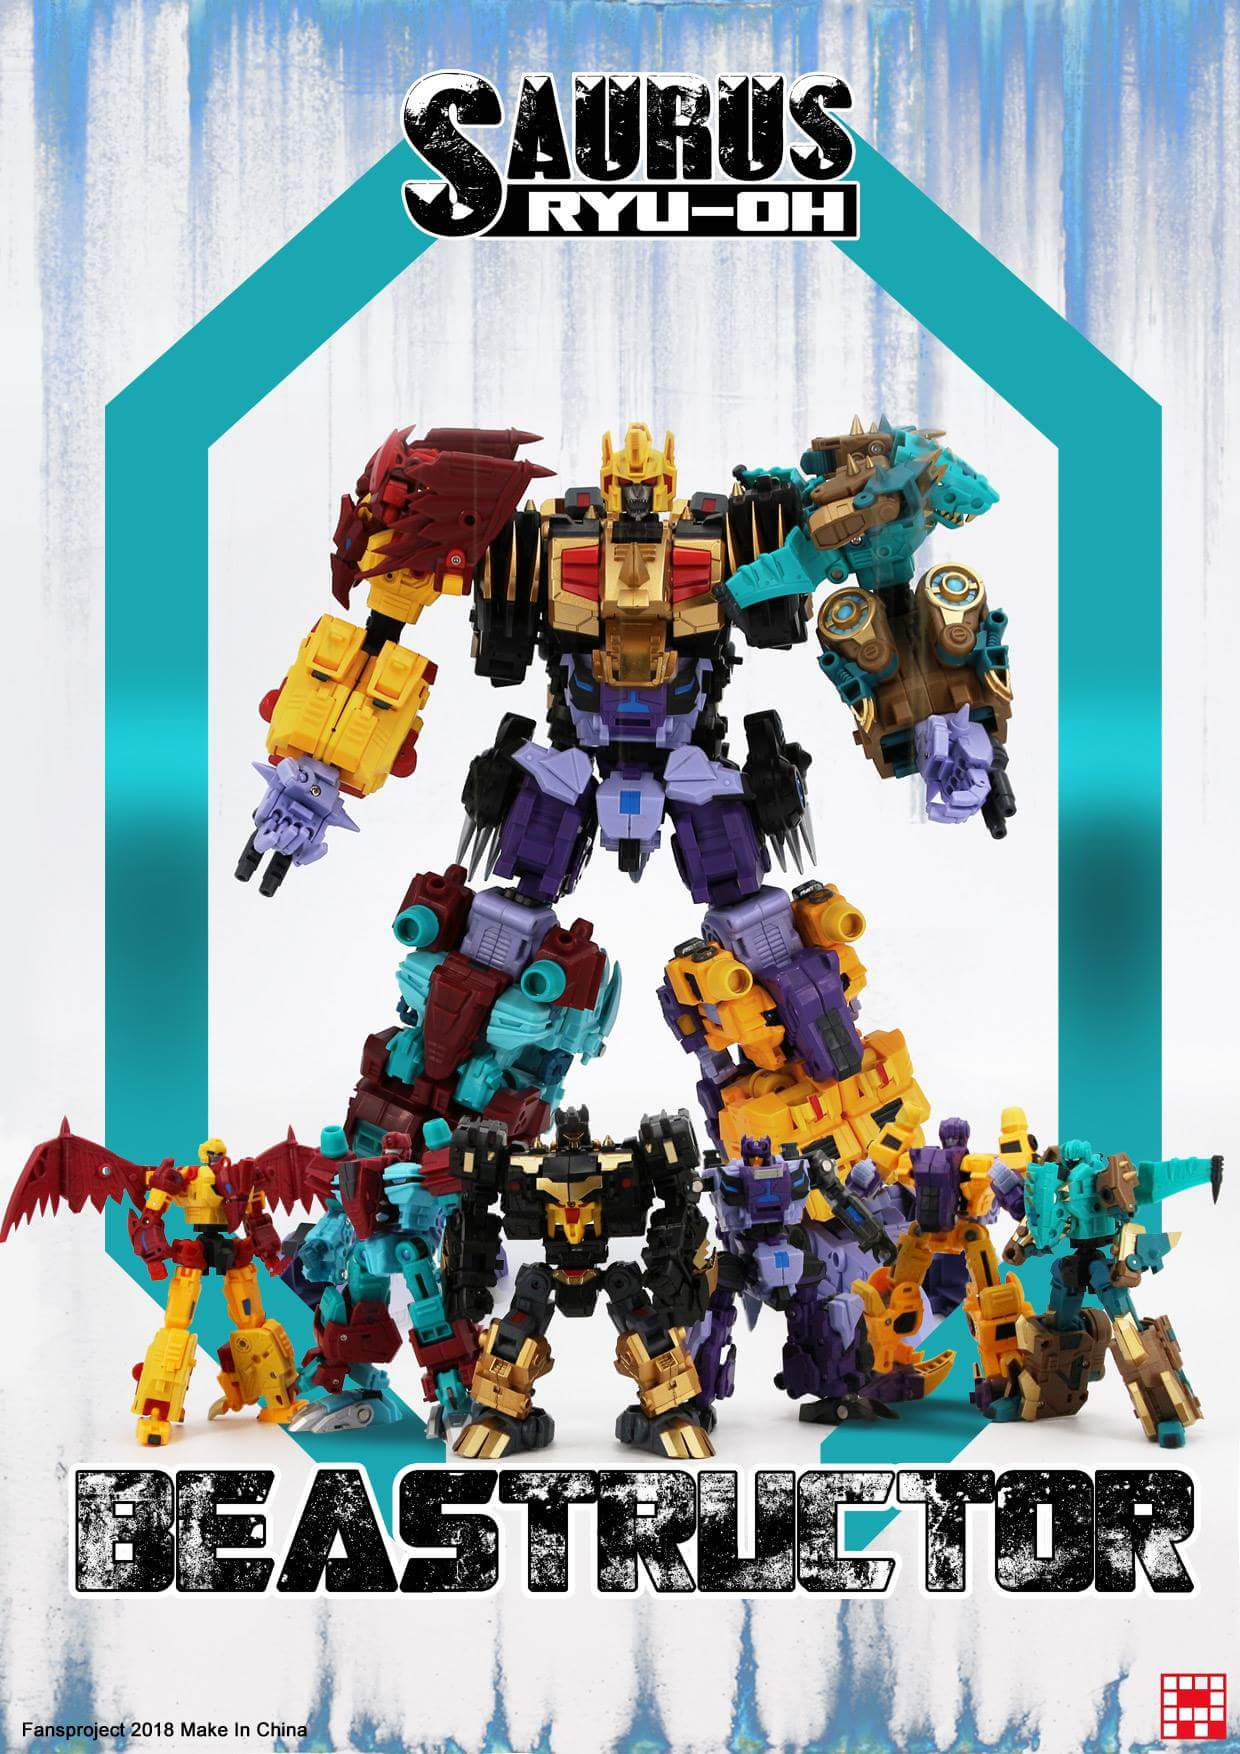 [FansProject] Produit Tiers - Jouet Saurus Ryu-oh aka Dinoking (Victory) | Monstructor (USA) - Page 3 M89Nhr1e_o